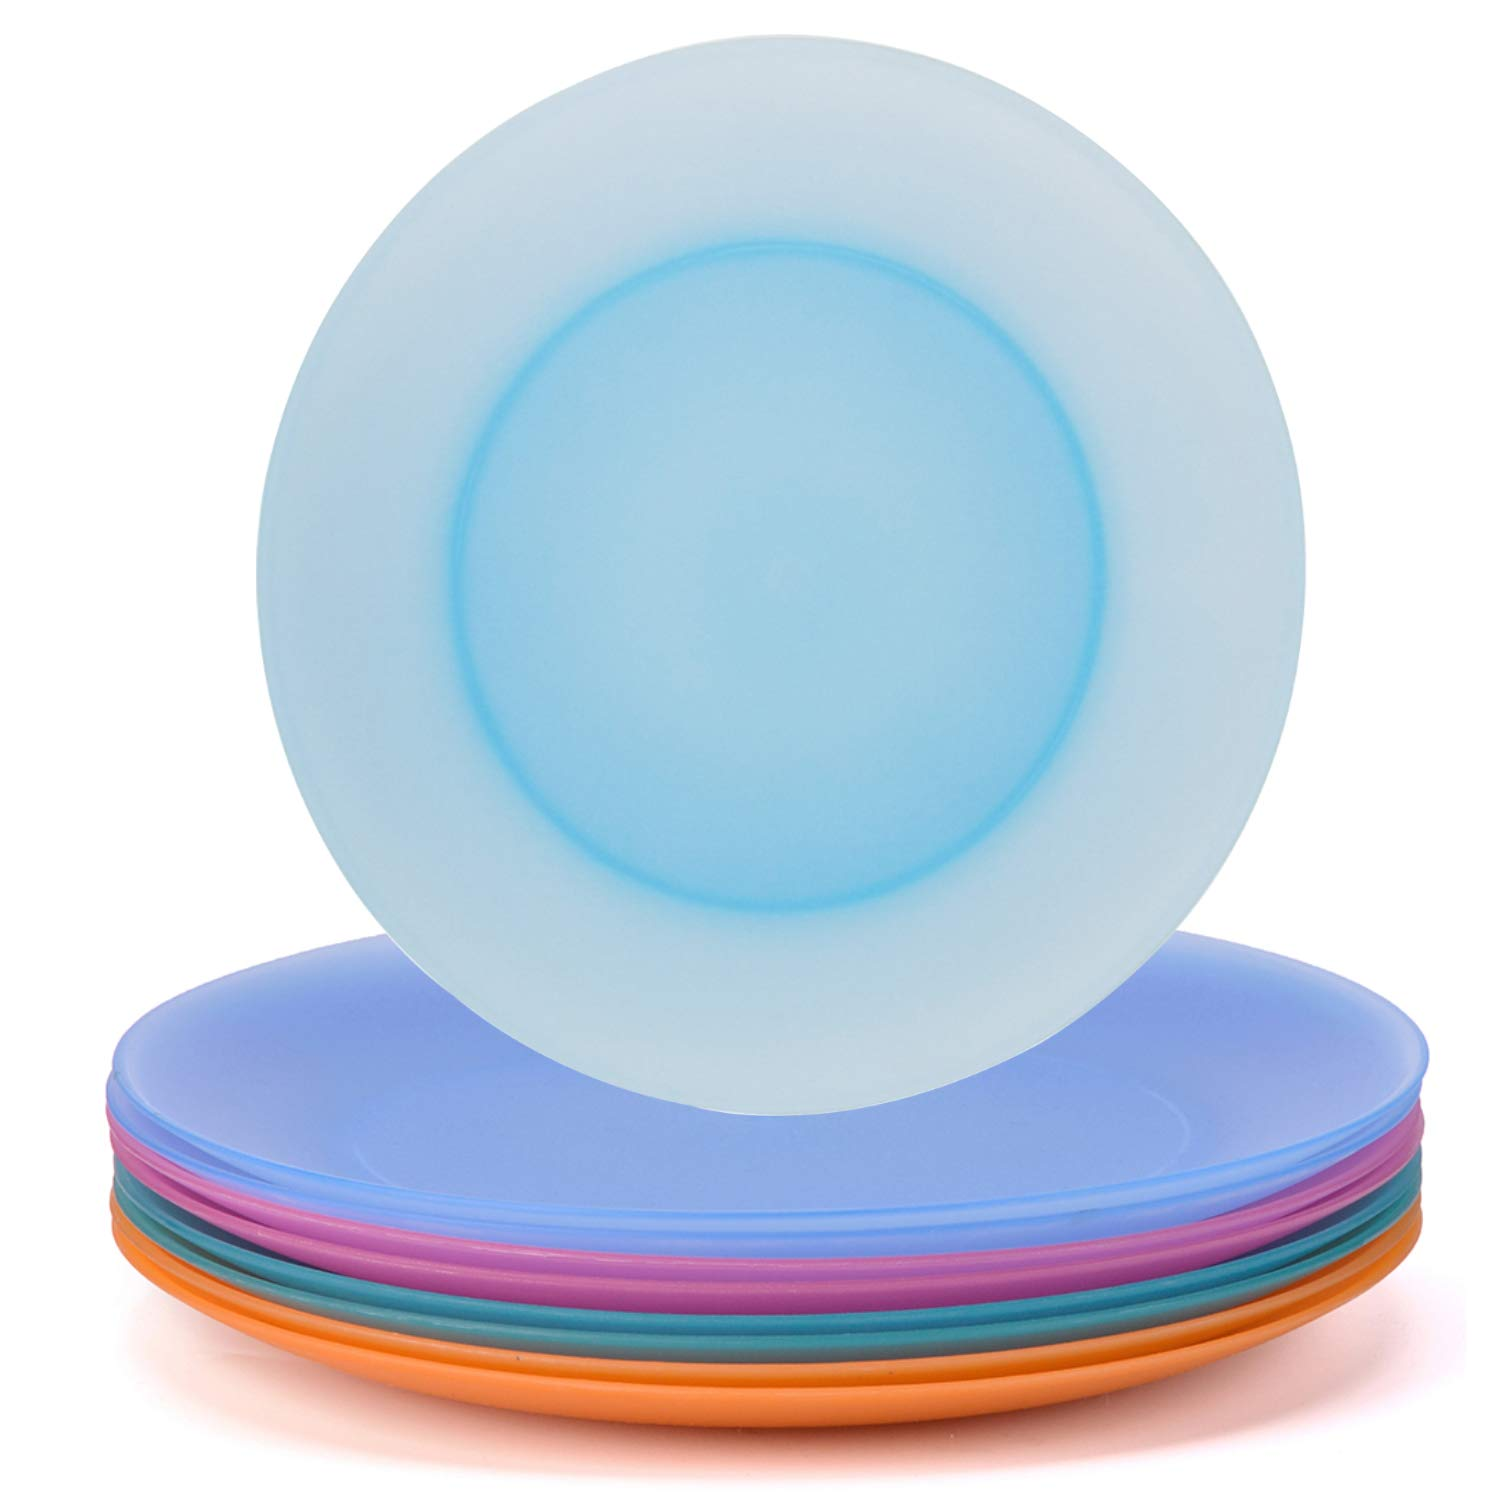 Plates Set of 8 in 4 Assorted Colors 10 Inch BPA